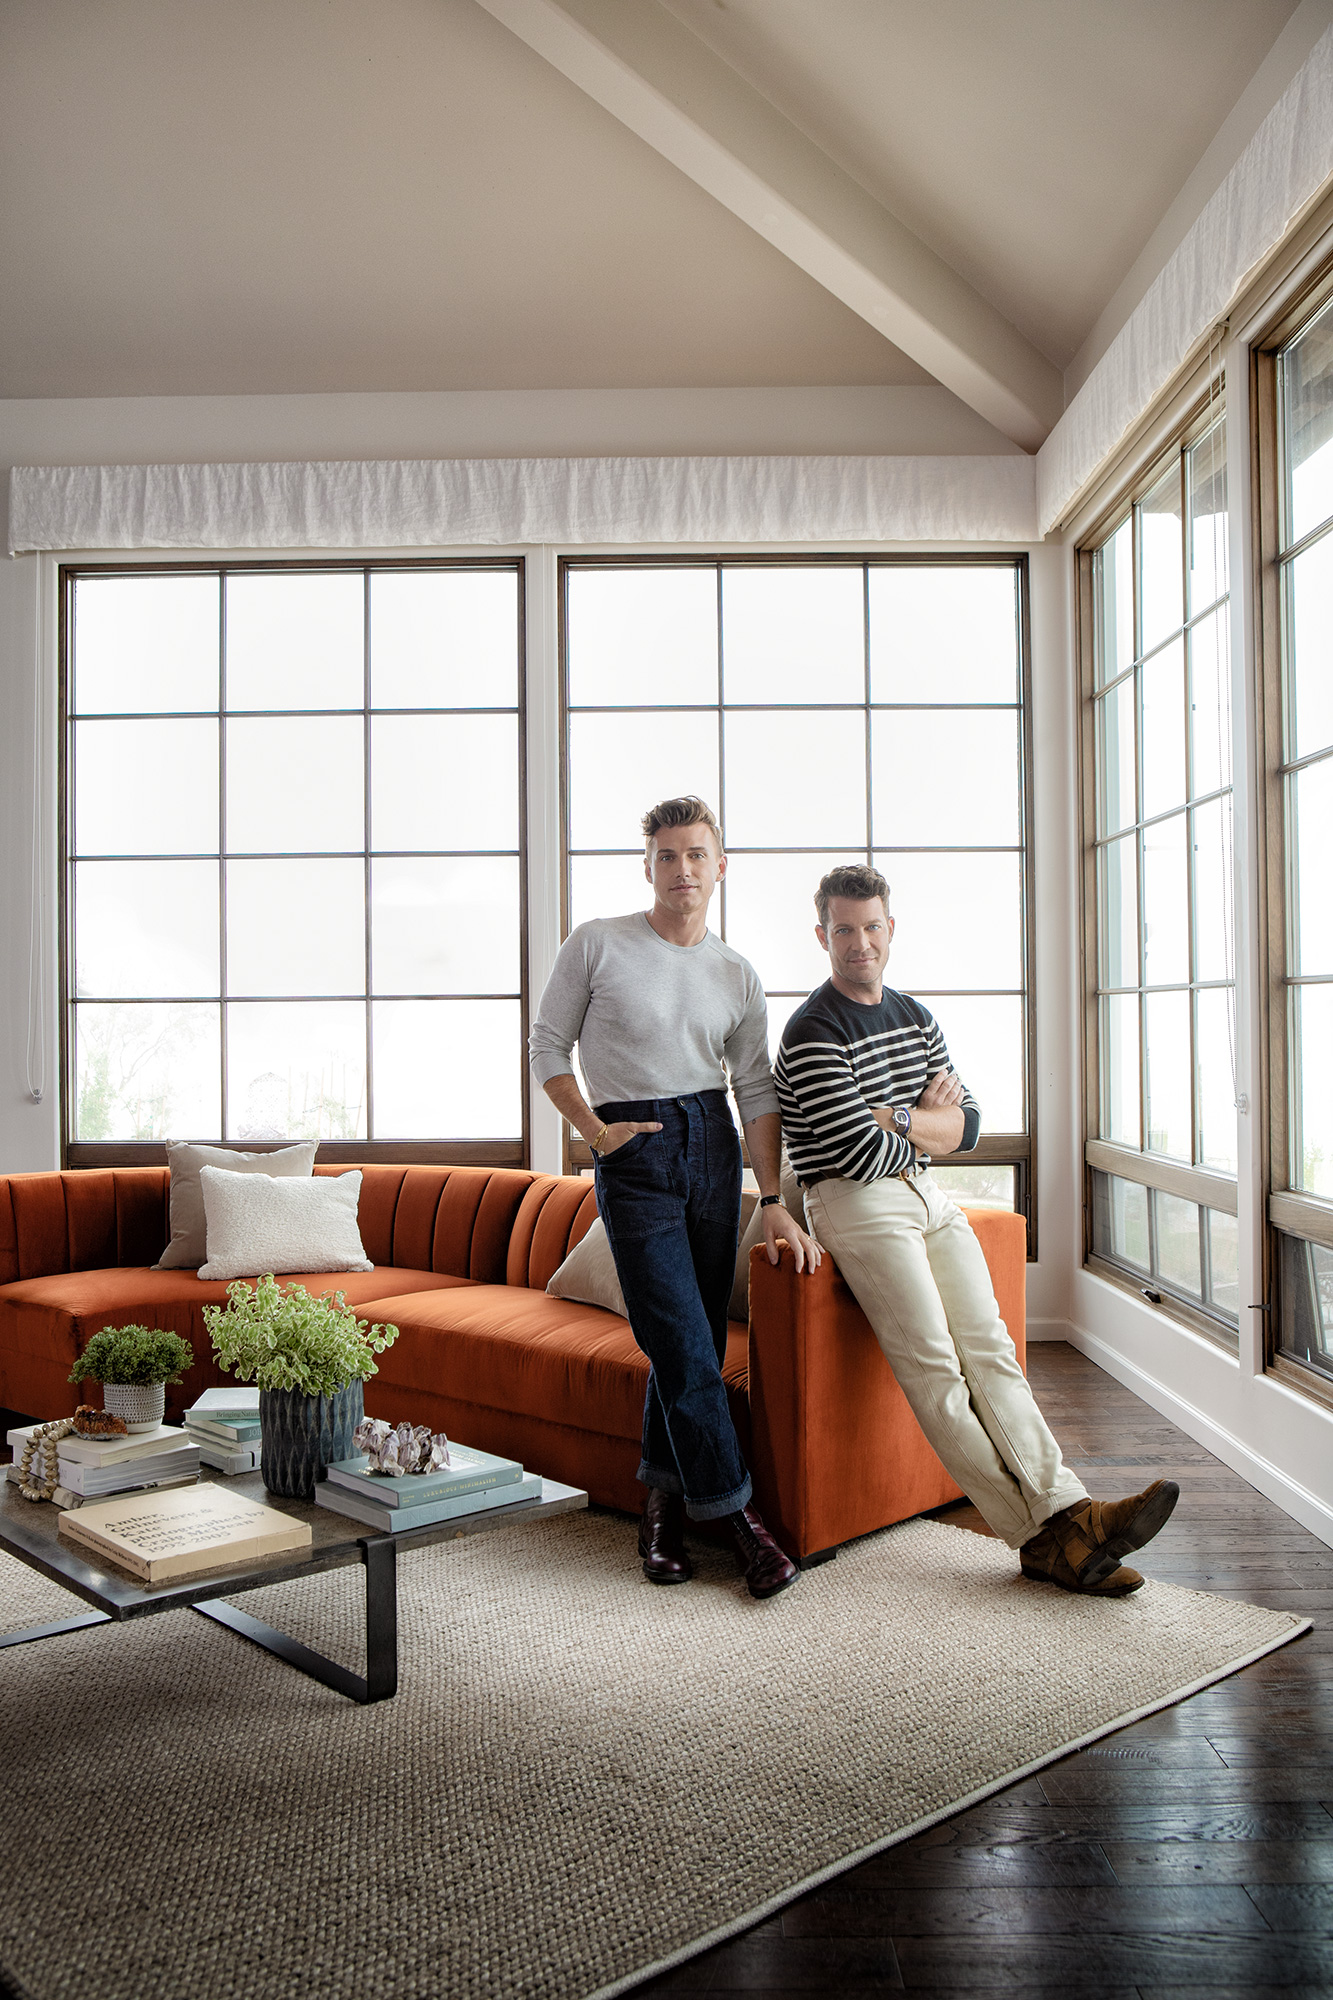 after christmas table konamoku accent nate berkus jeremiah brent living spaces mila square and debut furniture line inspired their own home dining room seating end tables black